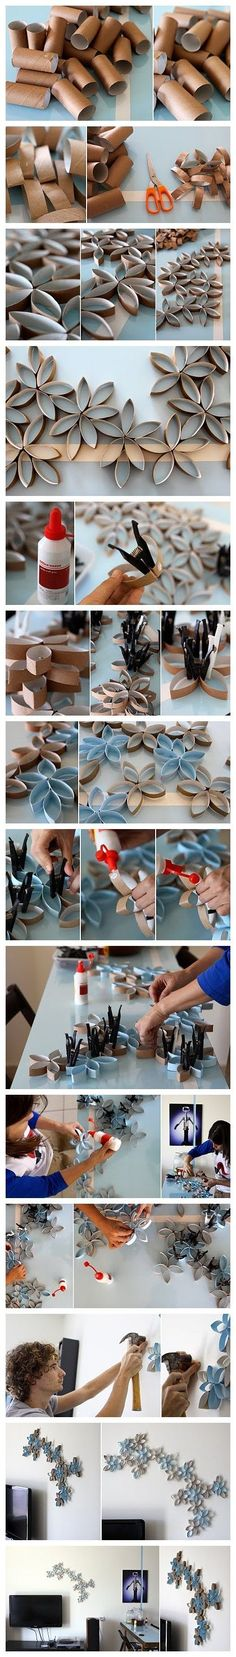 How to DIY toilet paper roll wall art project 2